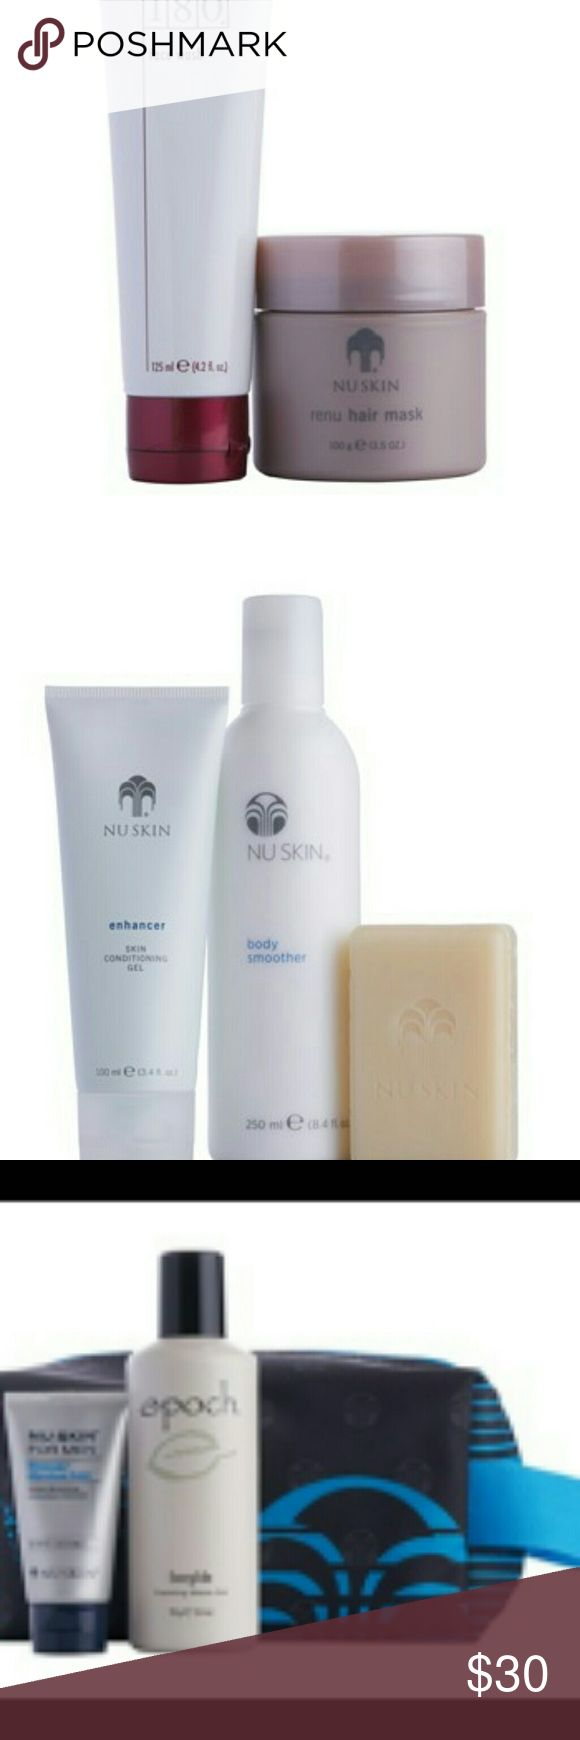 Facial Products We have facial mask, shaving kit, men gifts for Father's Day 28.00-38.00 Nu Skin  Other